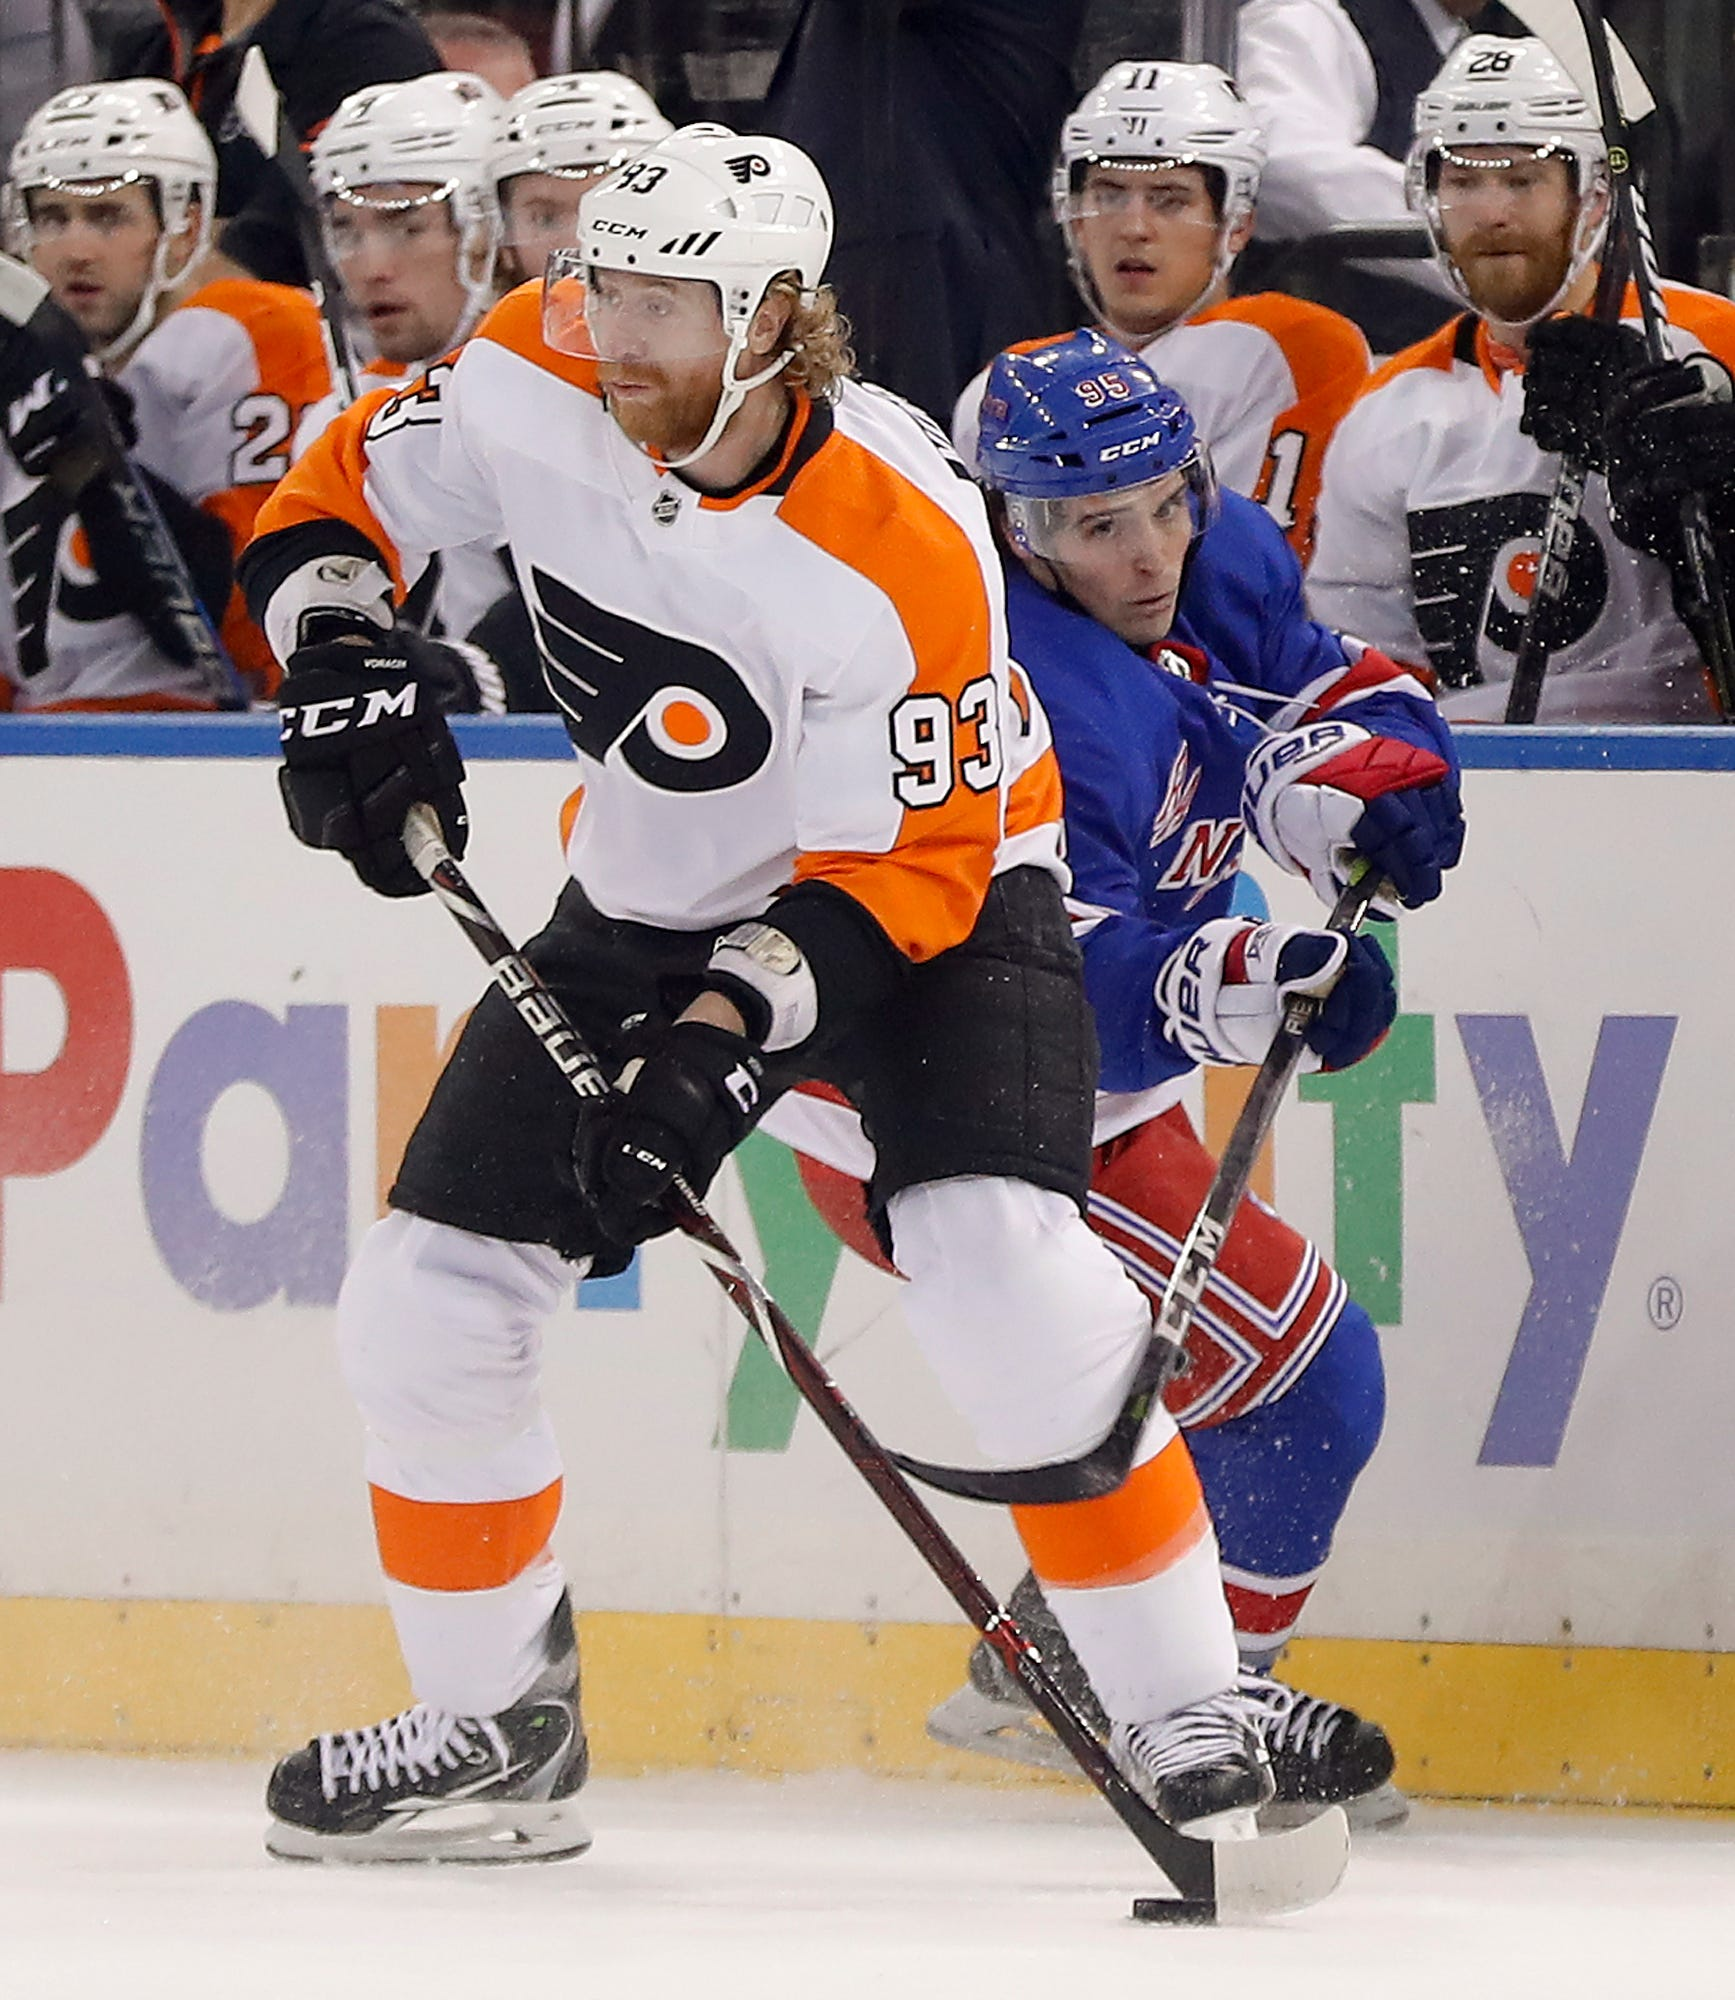 Rangers rout Flyers behind Nash's 2 goals